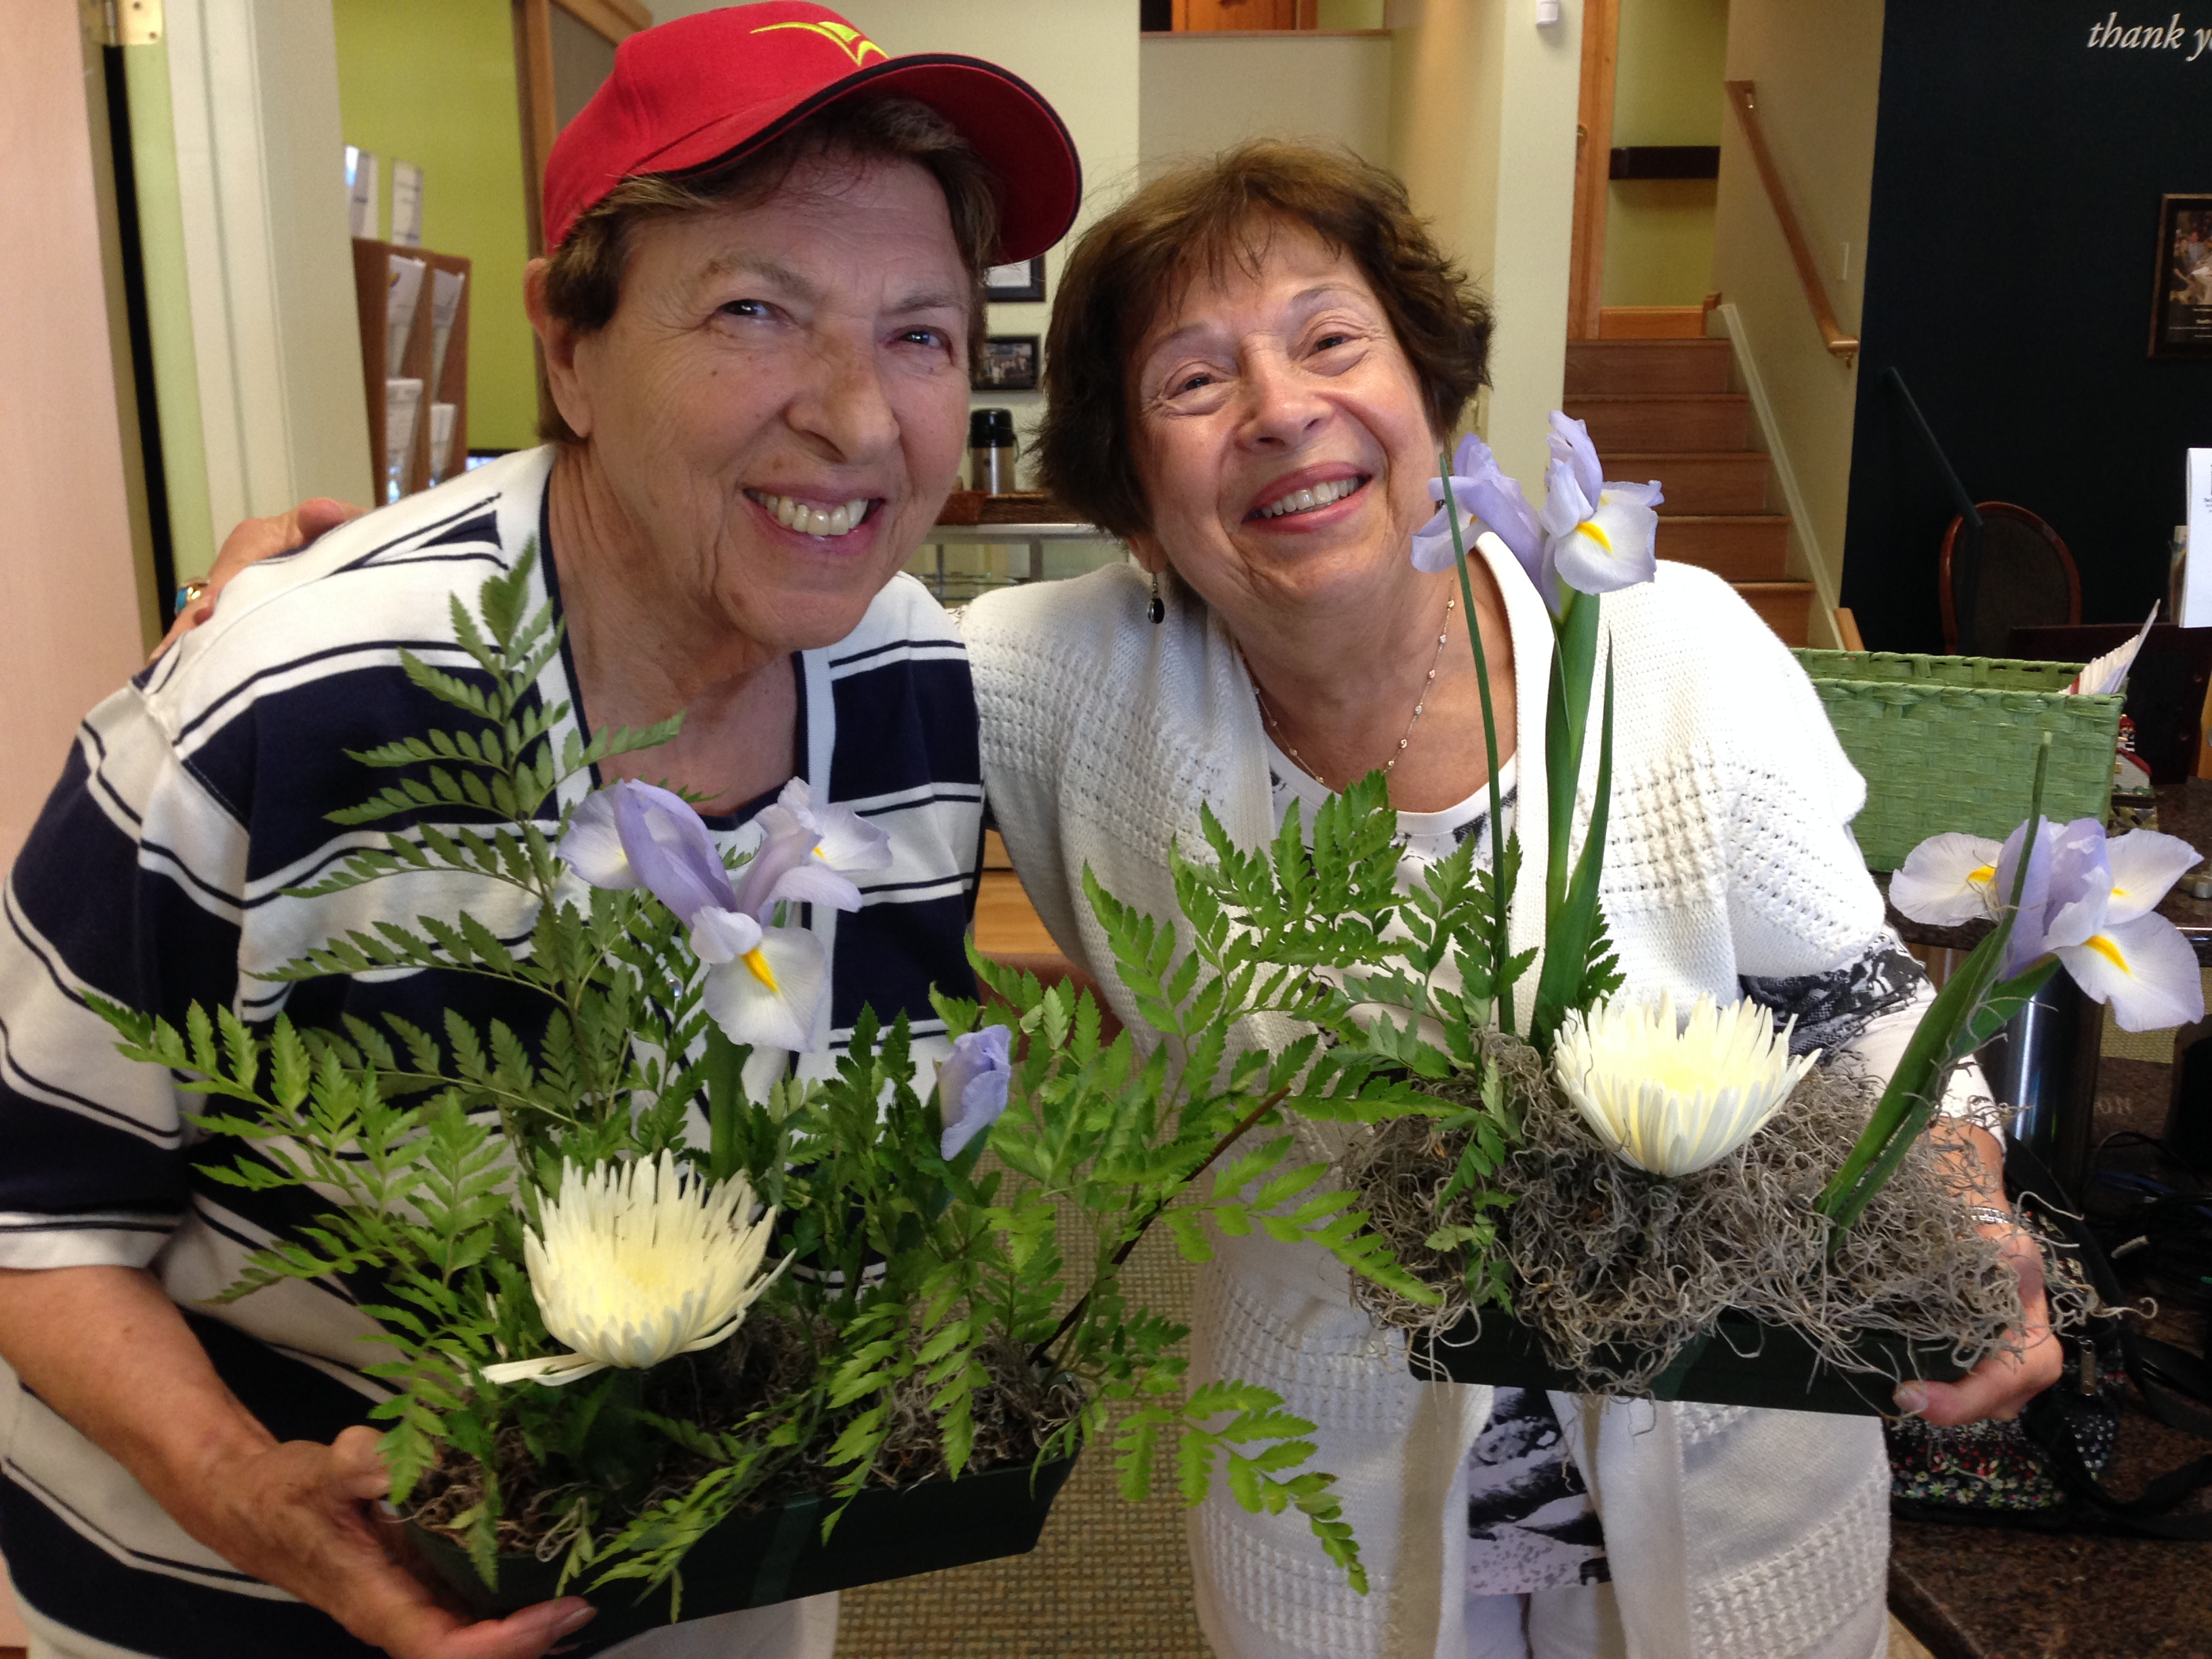 Lois and a friend in the seniors program at an event